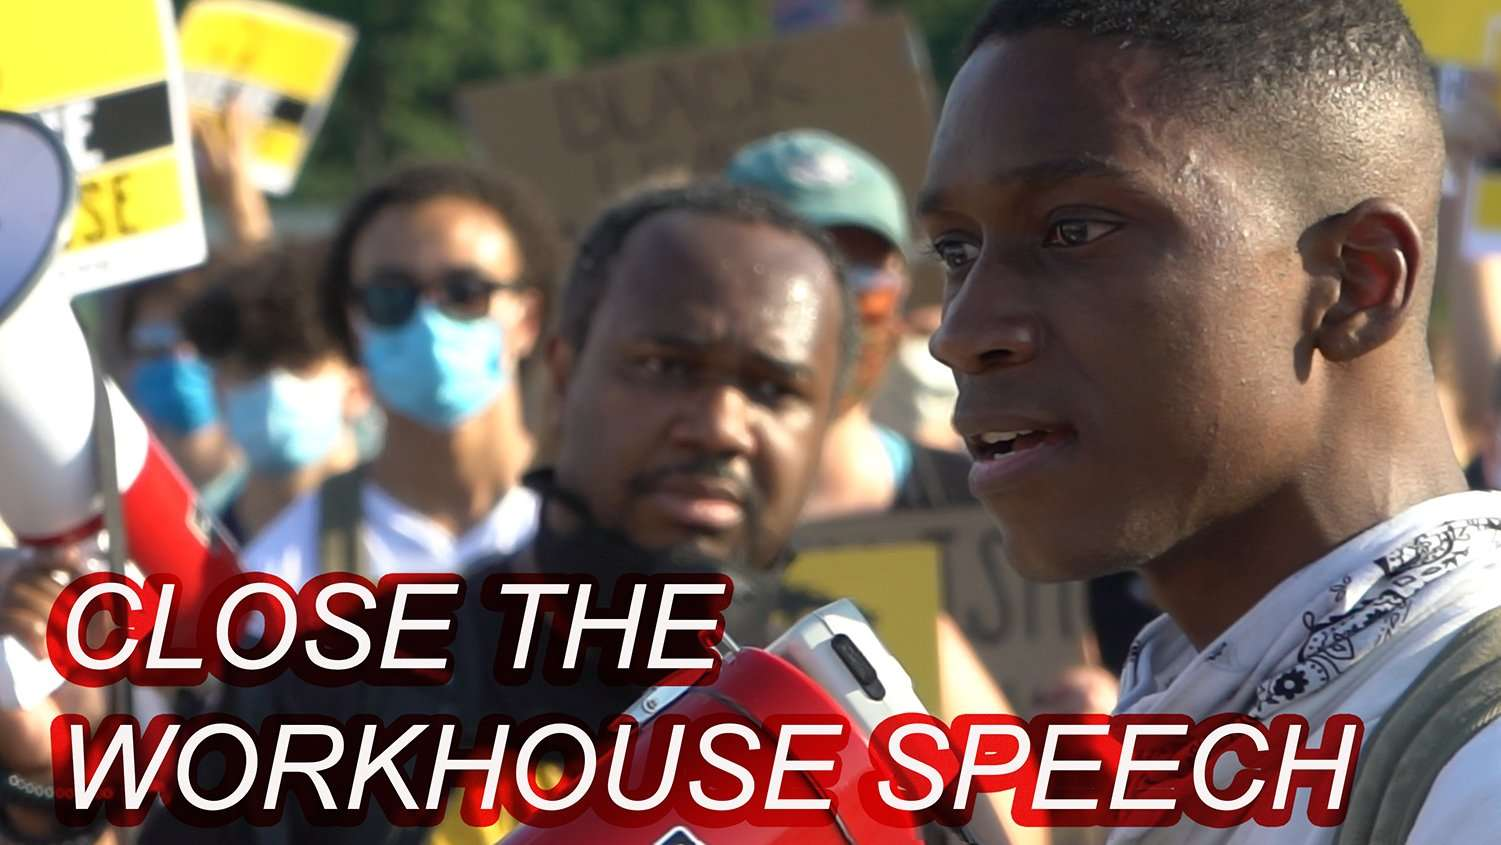 Close the workhouse Speech YouTube cover